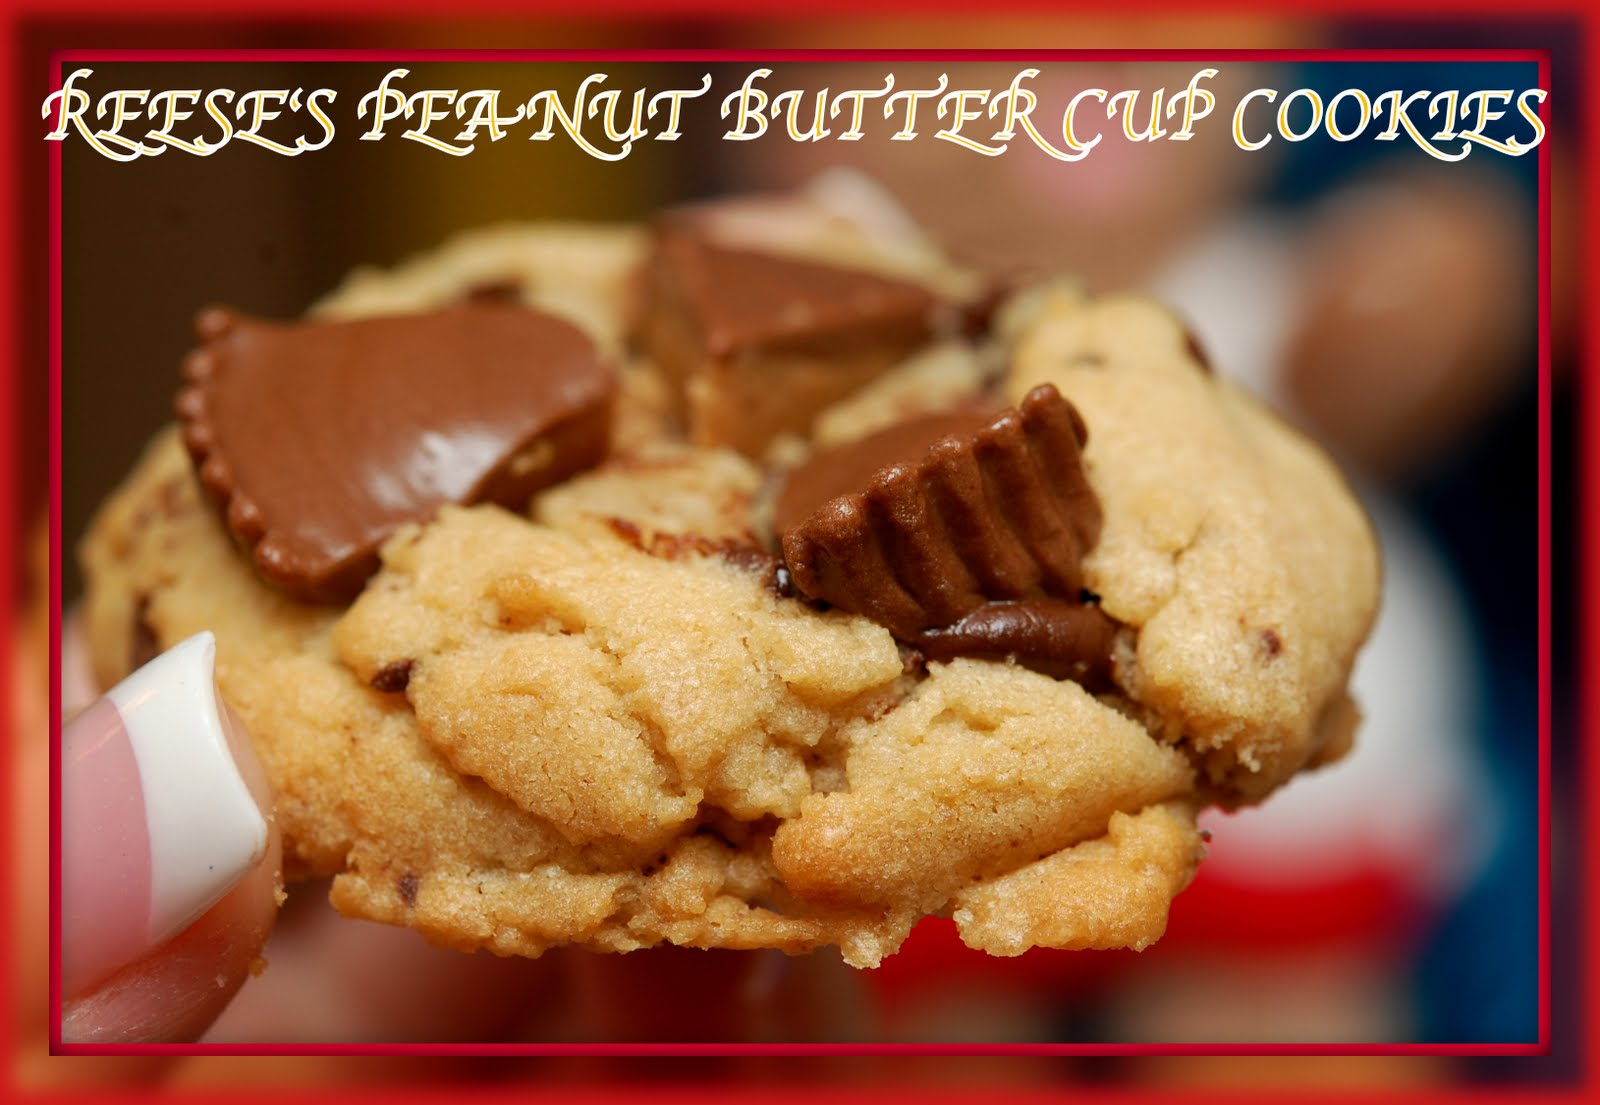 OVER THE TOP REESE'S PEANUT BUTTER CUP COOKIES - Hugs and Cookies XOXO